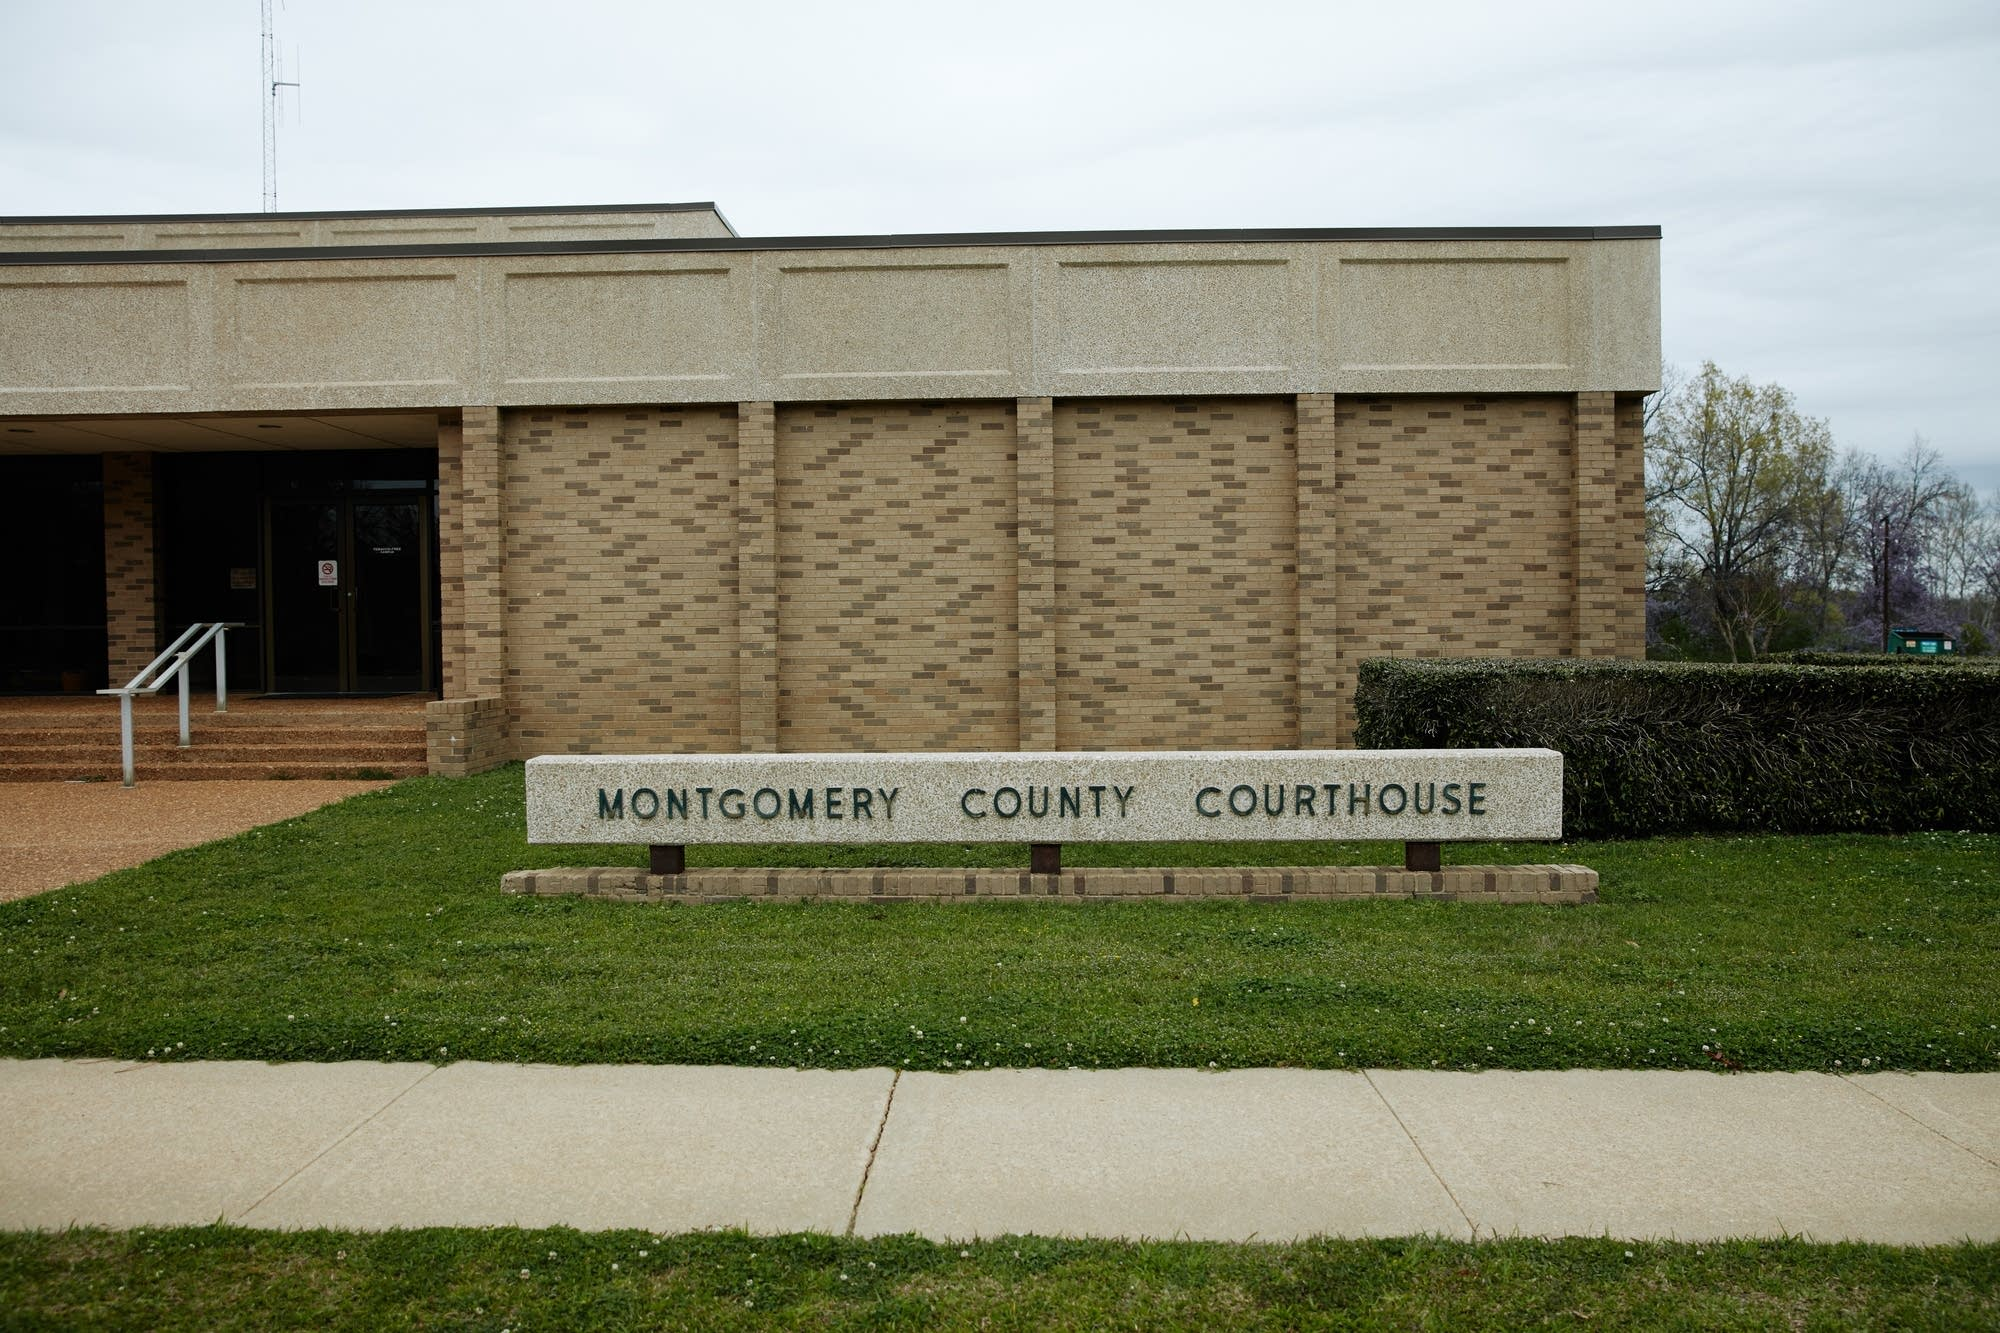 The Montgomery County Courthouse in Winona, Mississippi.